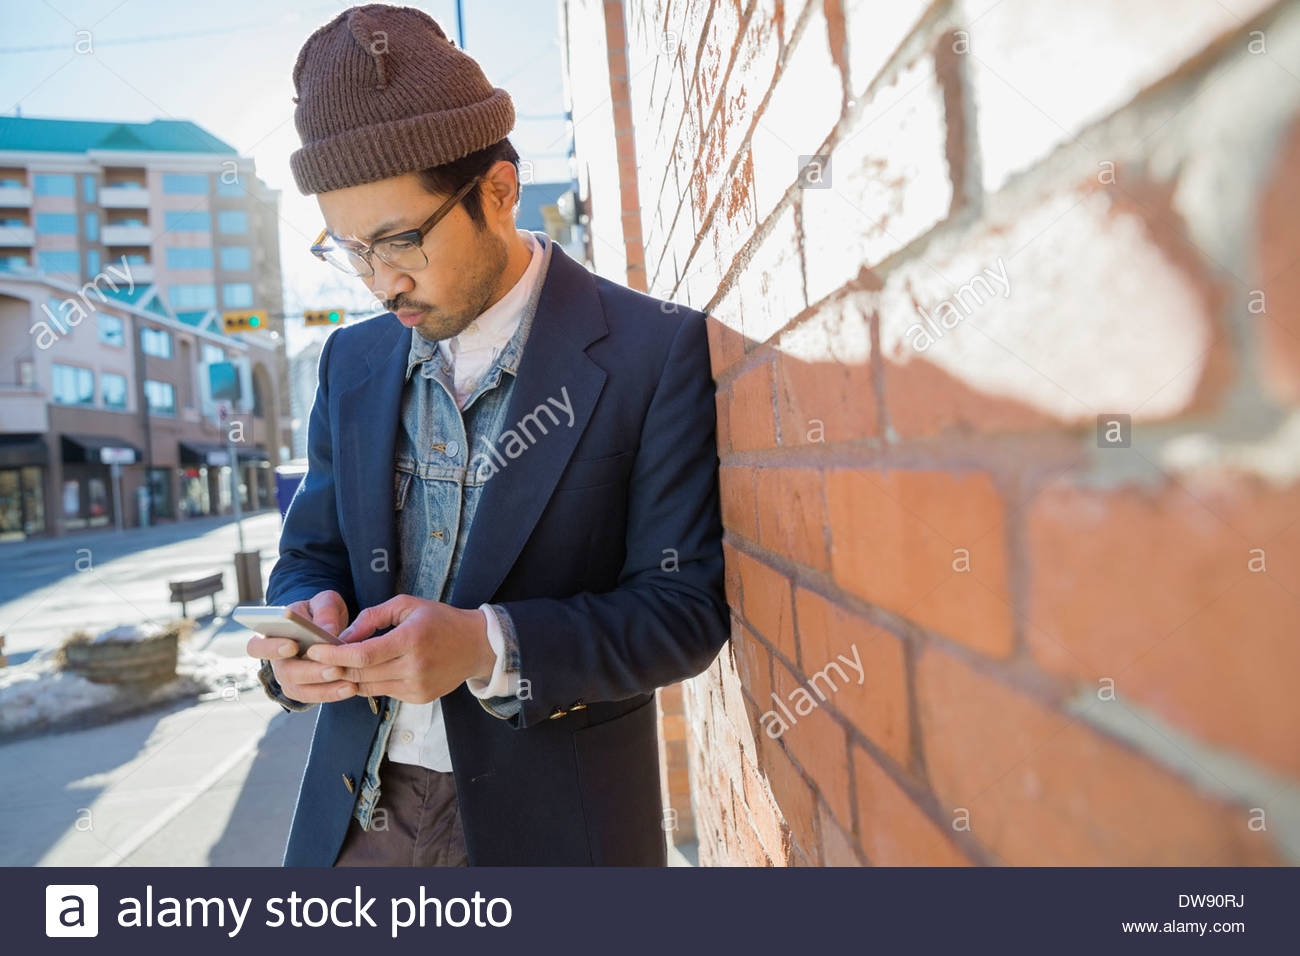 Man text messaging on smart phone against brick wall Stock Photo